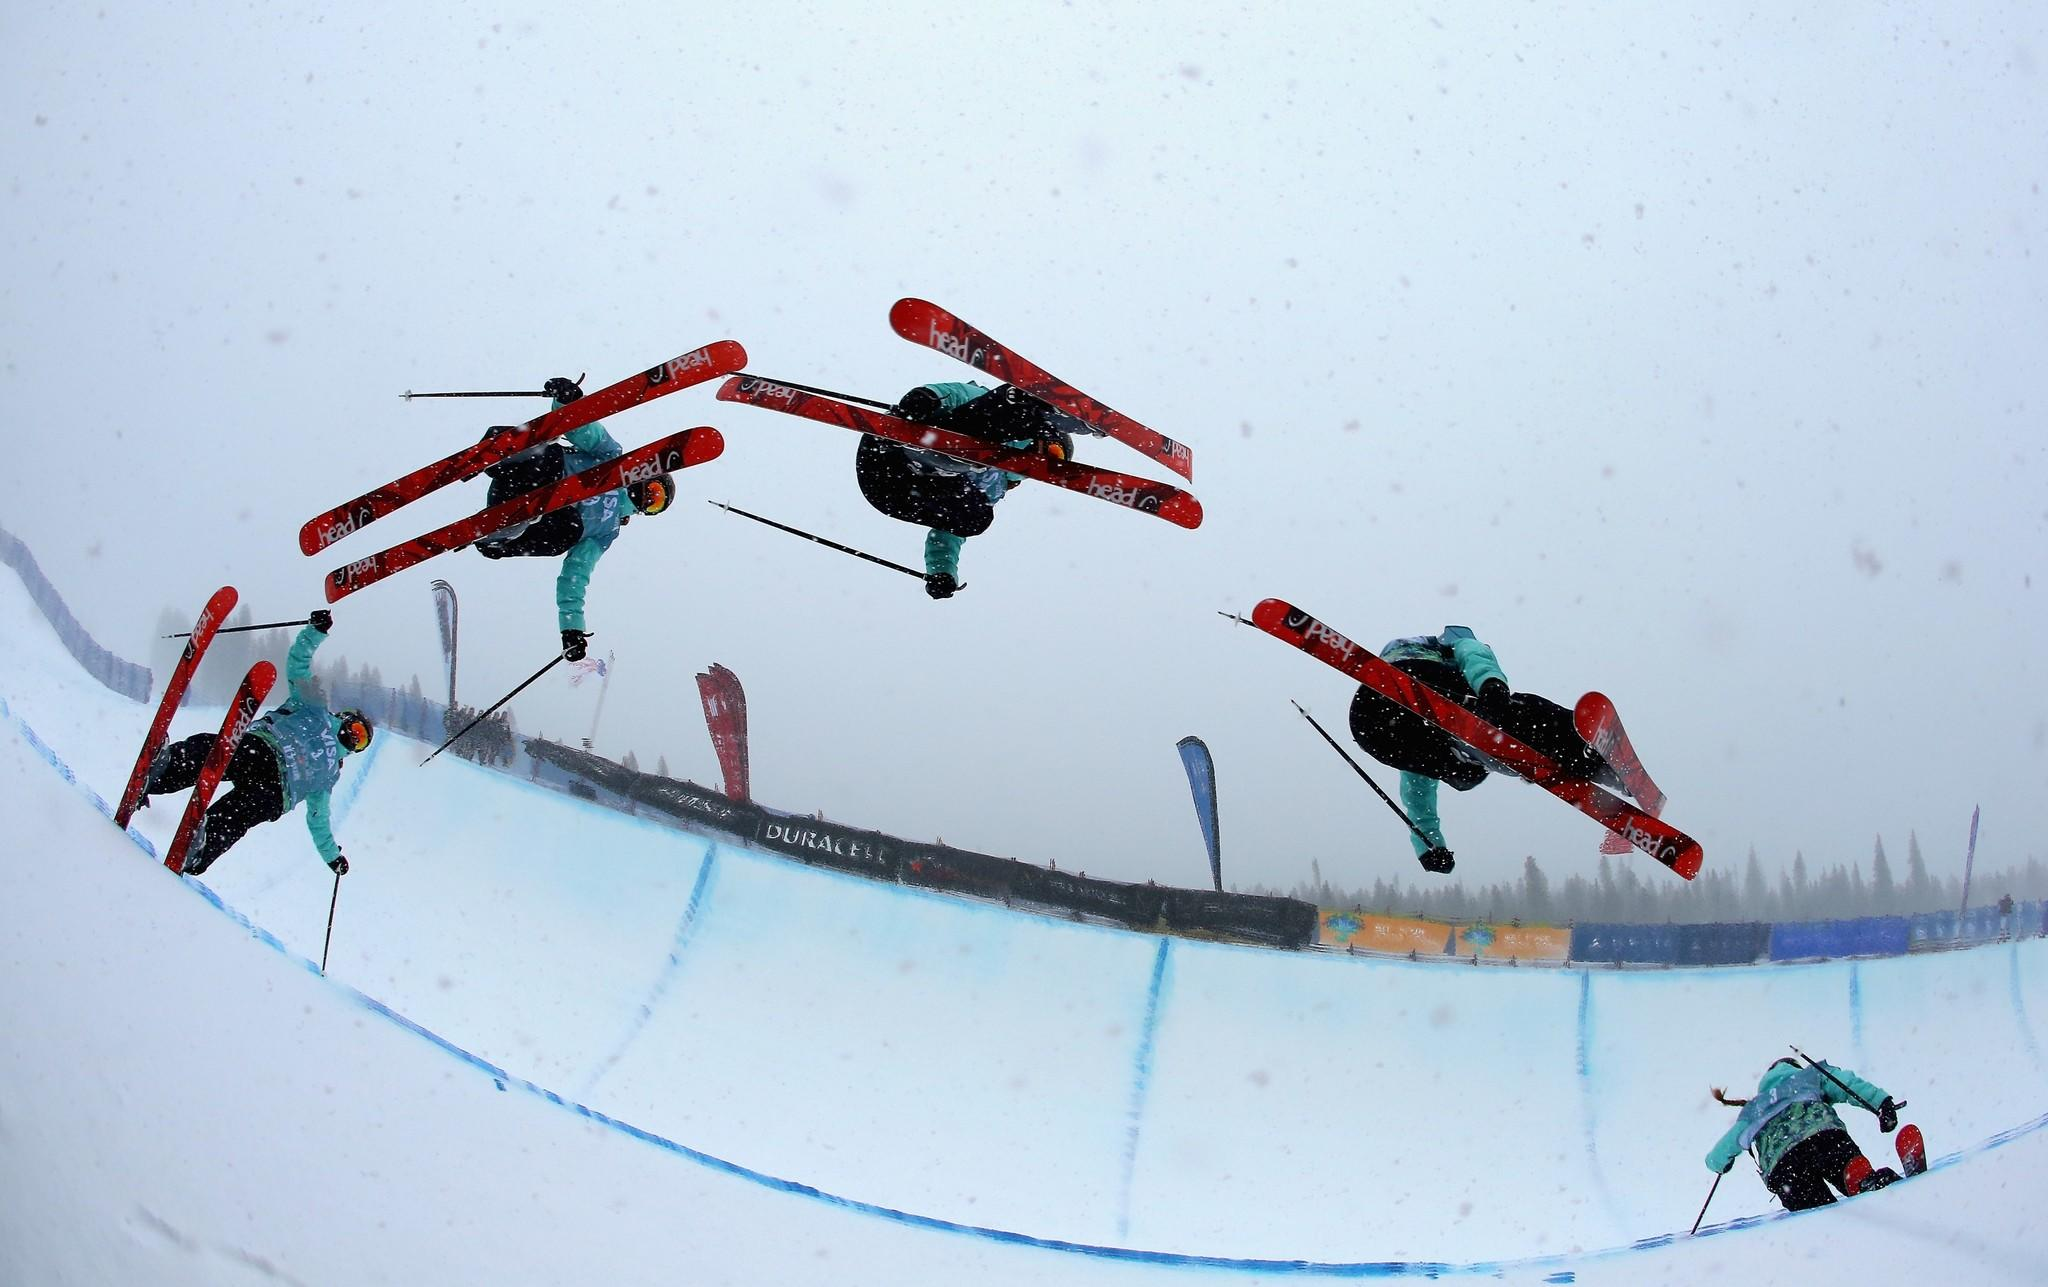 Maddie Bowman practices ahead of the women's halfpipe final in Breckenridge. (Streeter Lecka/Getty Photo)